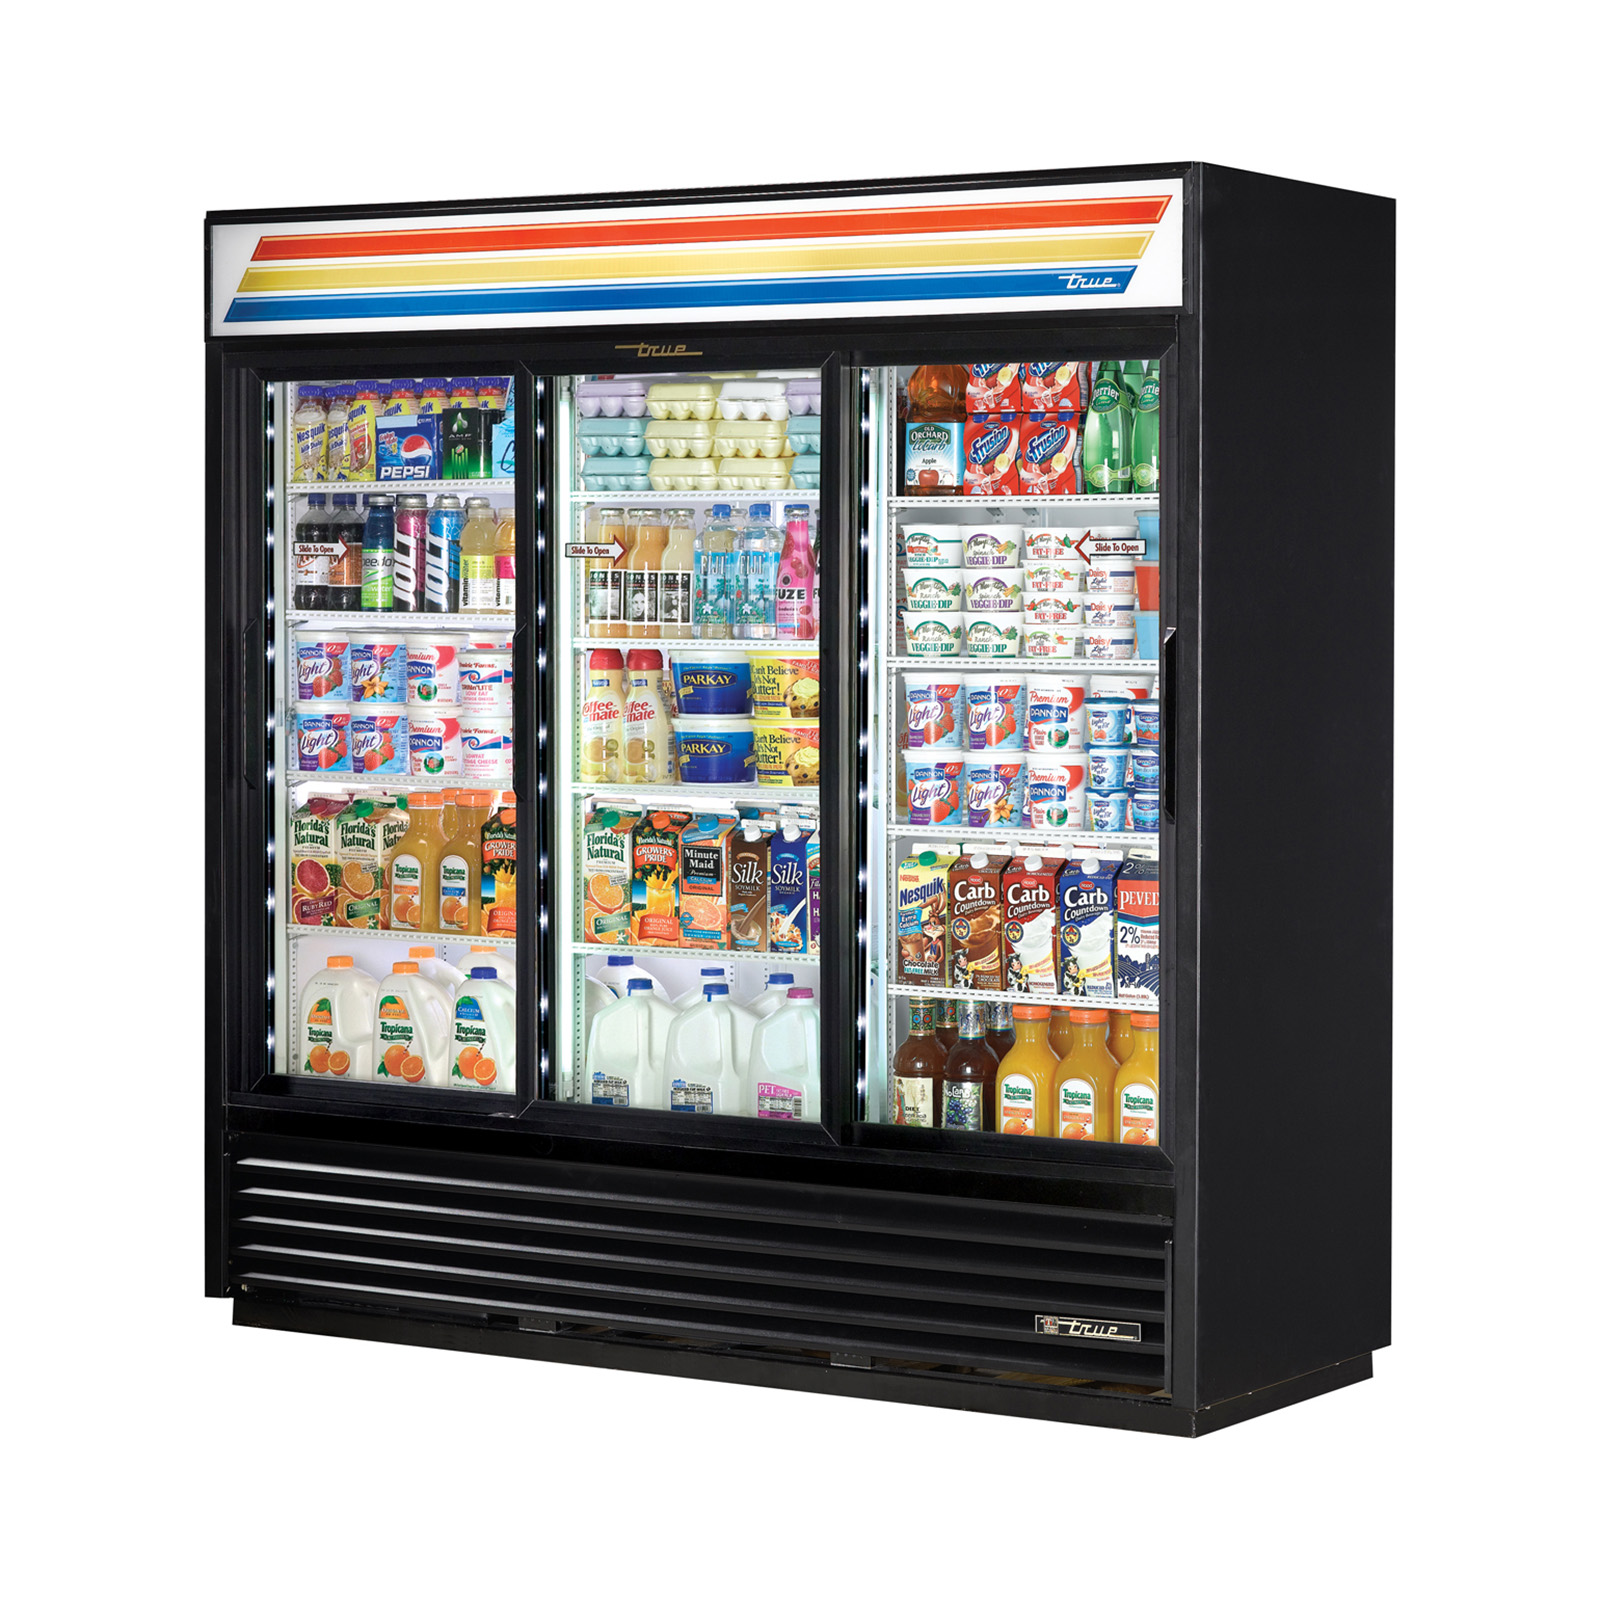 GDM-69-LD True - Refrigerated Merchandiser three-section